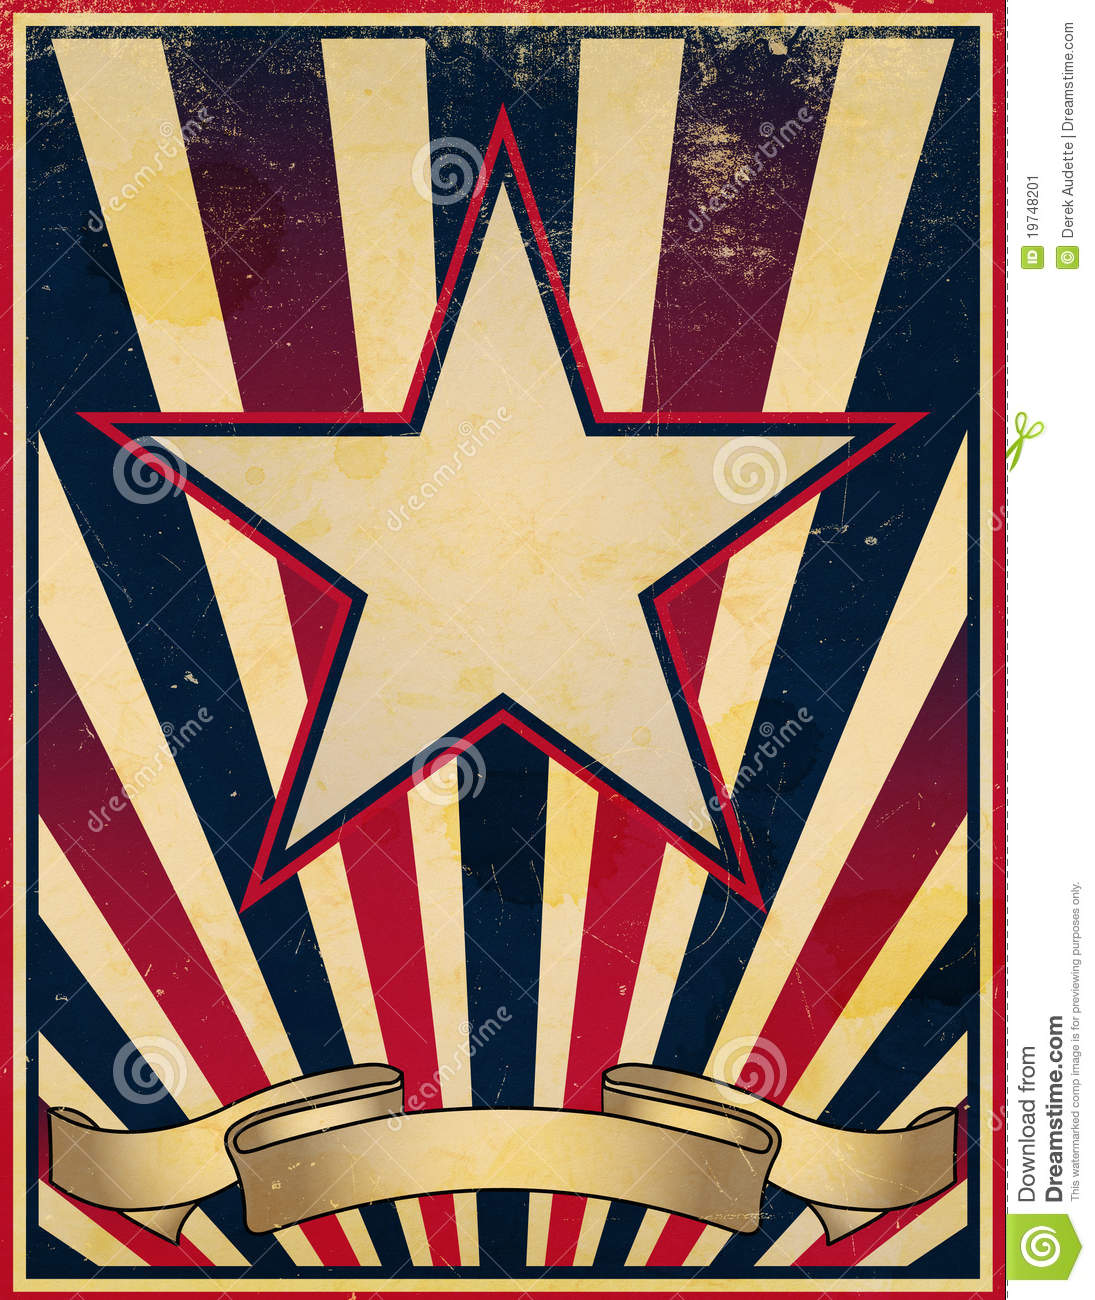 ... and faded stars and stripes themed vintage retro poster background